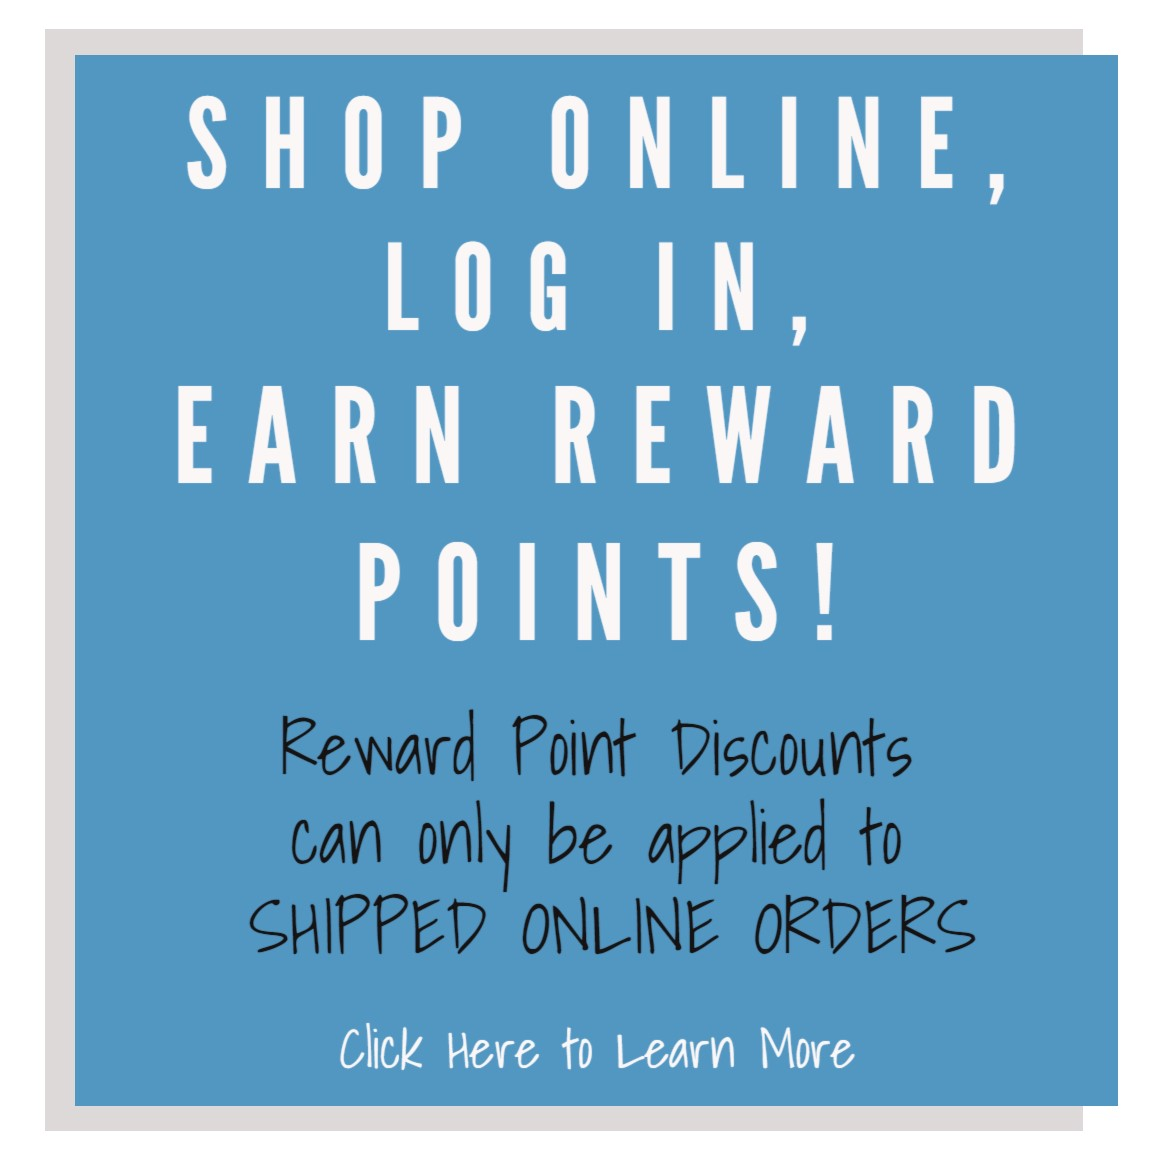 Loyalty Points / Rewards Program